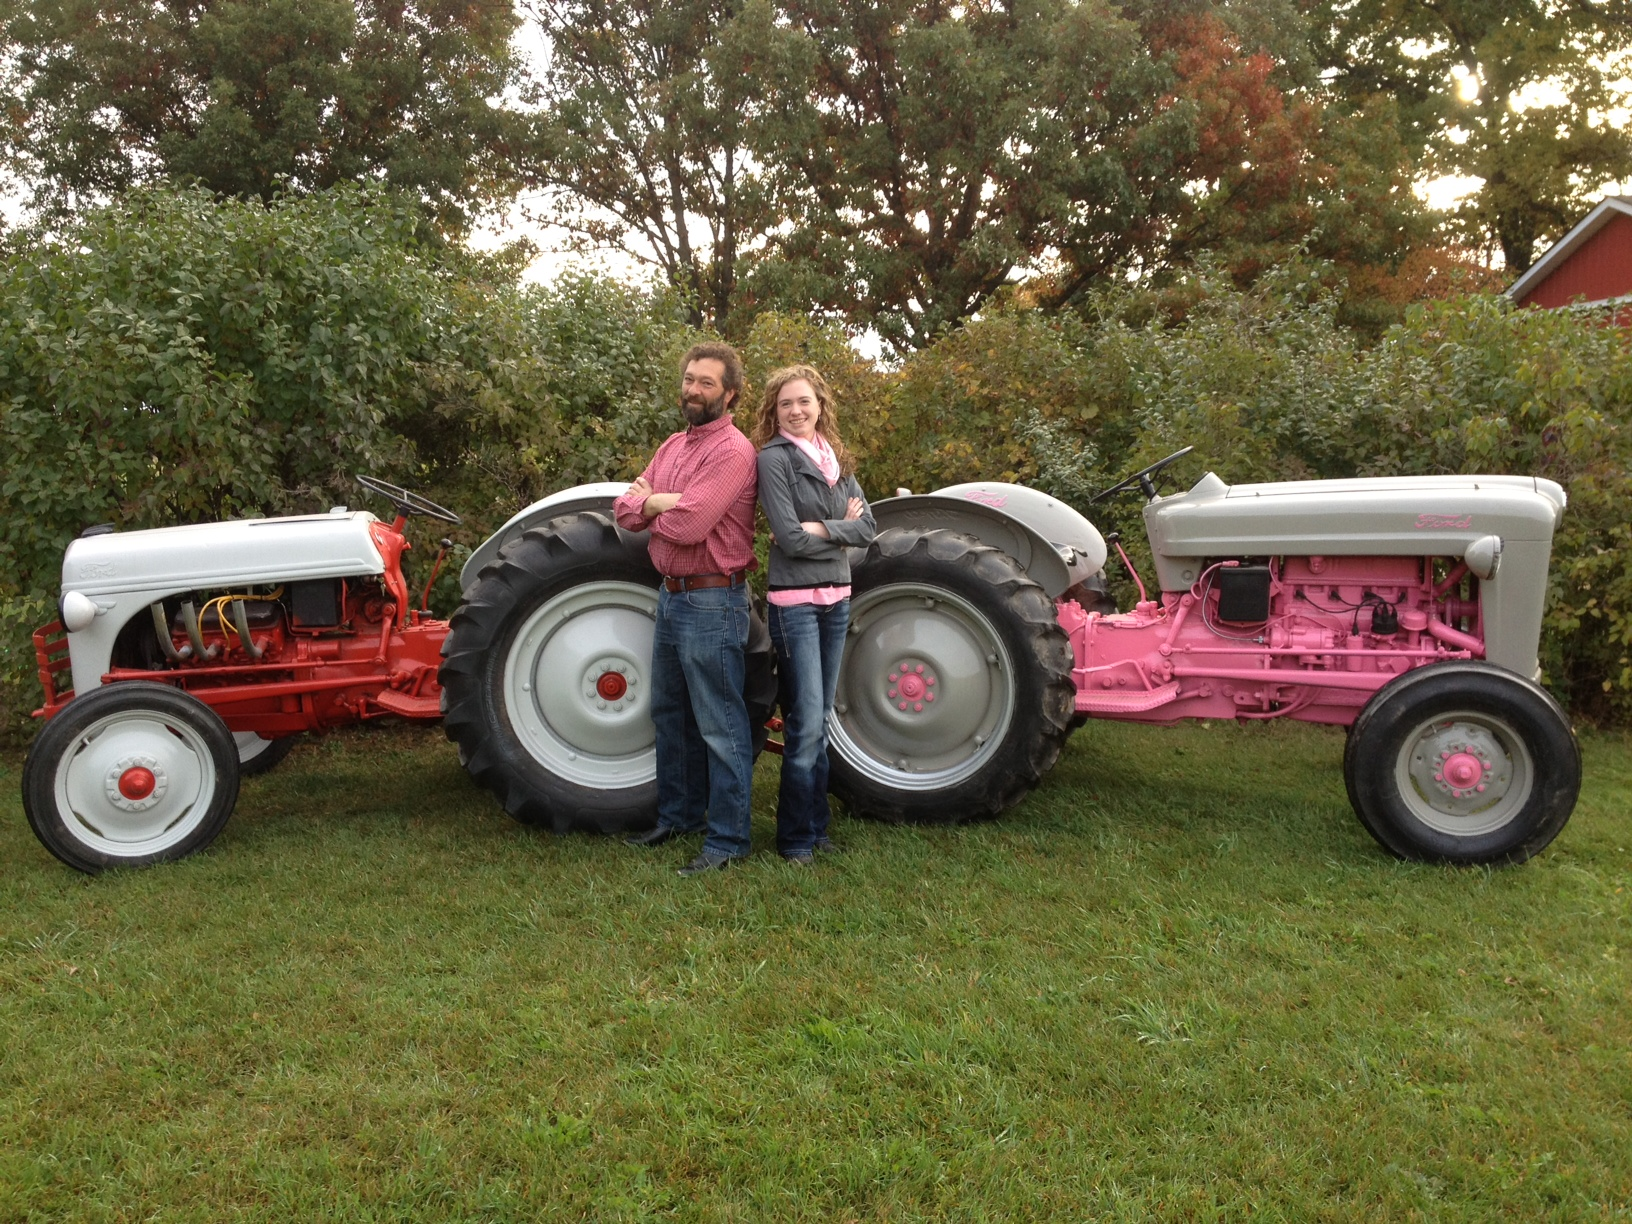 Ford Classic Tractors : Father daughter team customizes a pair of classic ford